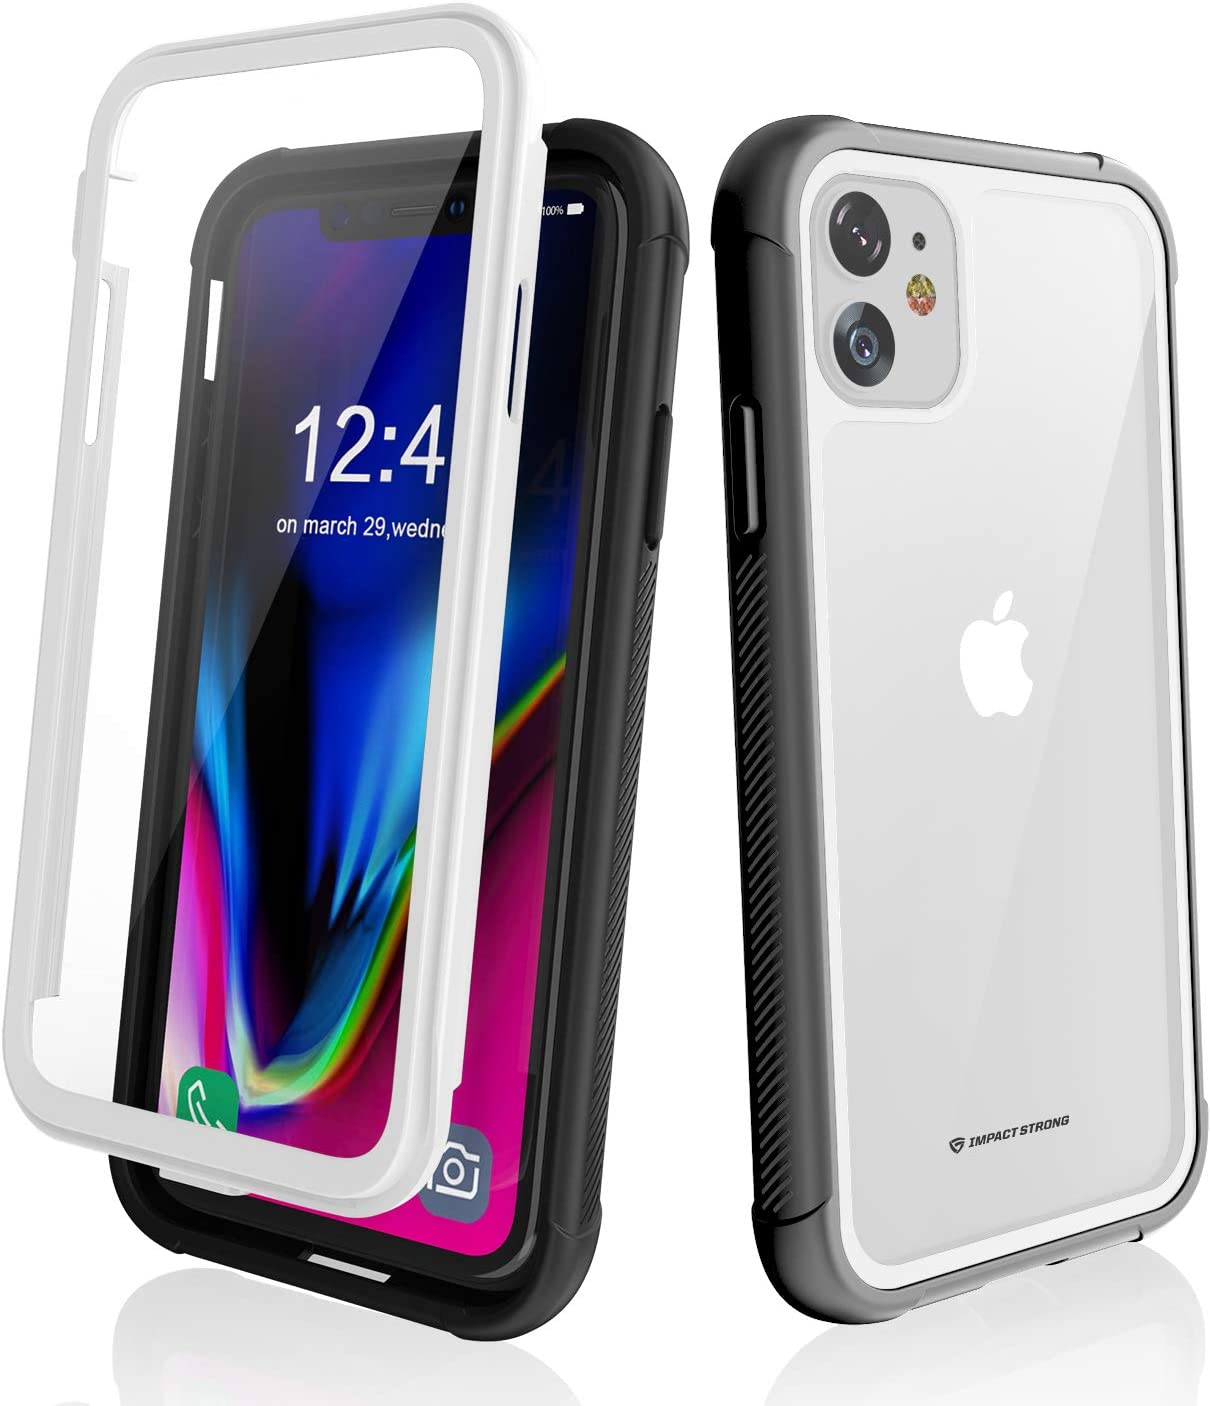 ImpactStrong iPhone 11 Case, Ultra Protective Case with Built-in Clear Screen Protector Full Body Cover for iPhone 11 6.1-Inch (2019) - White